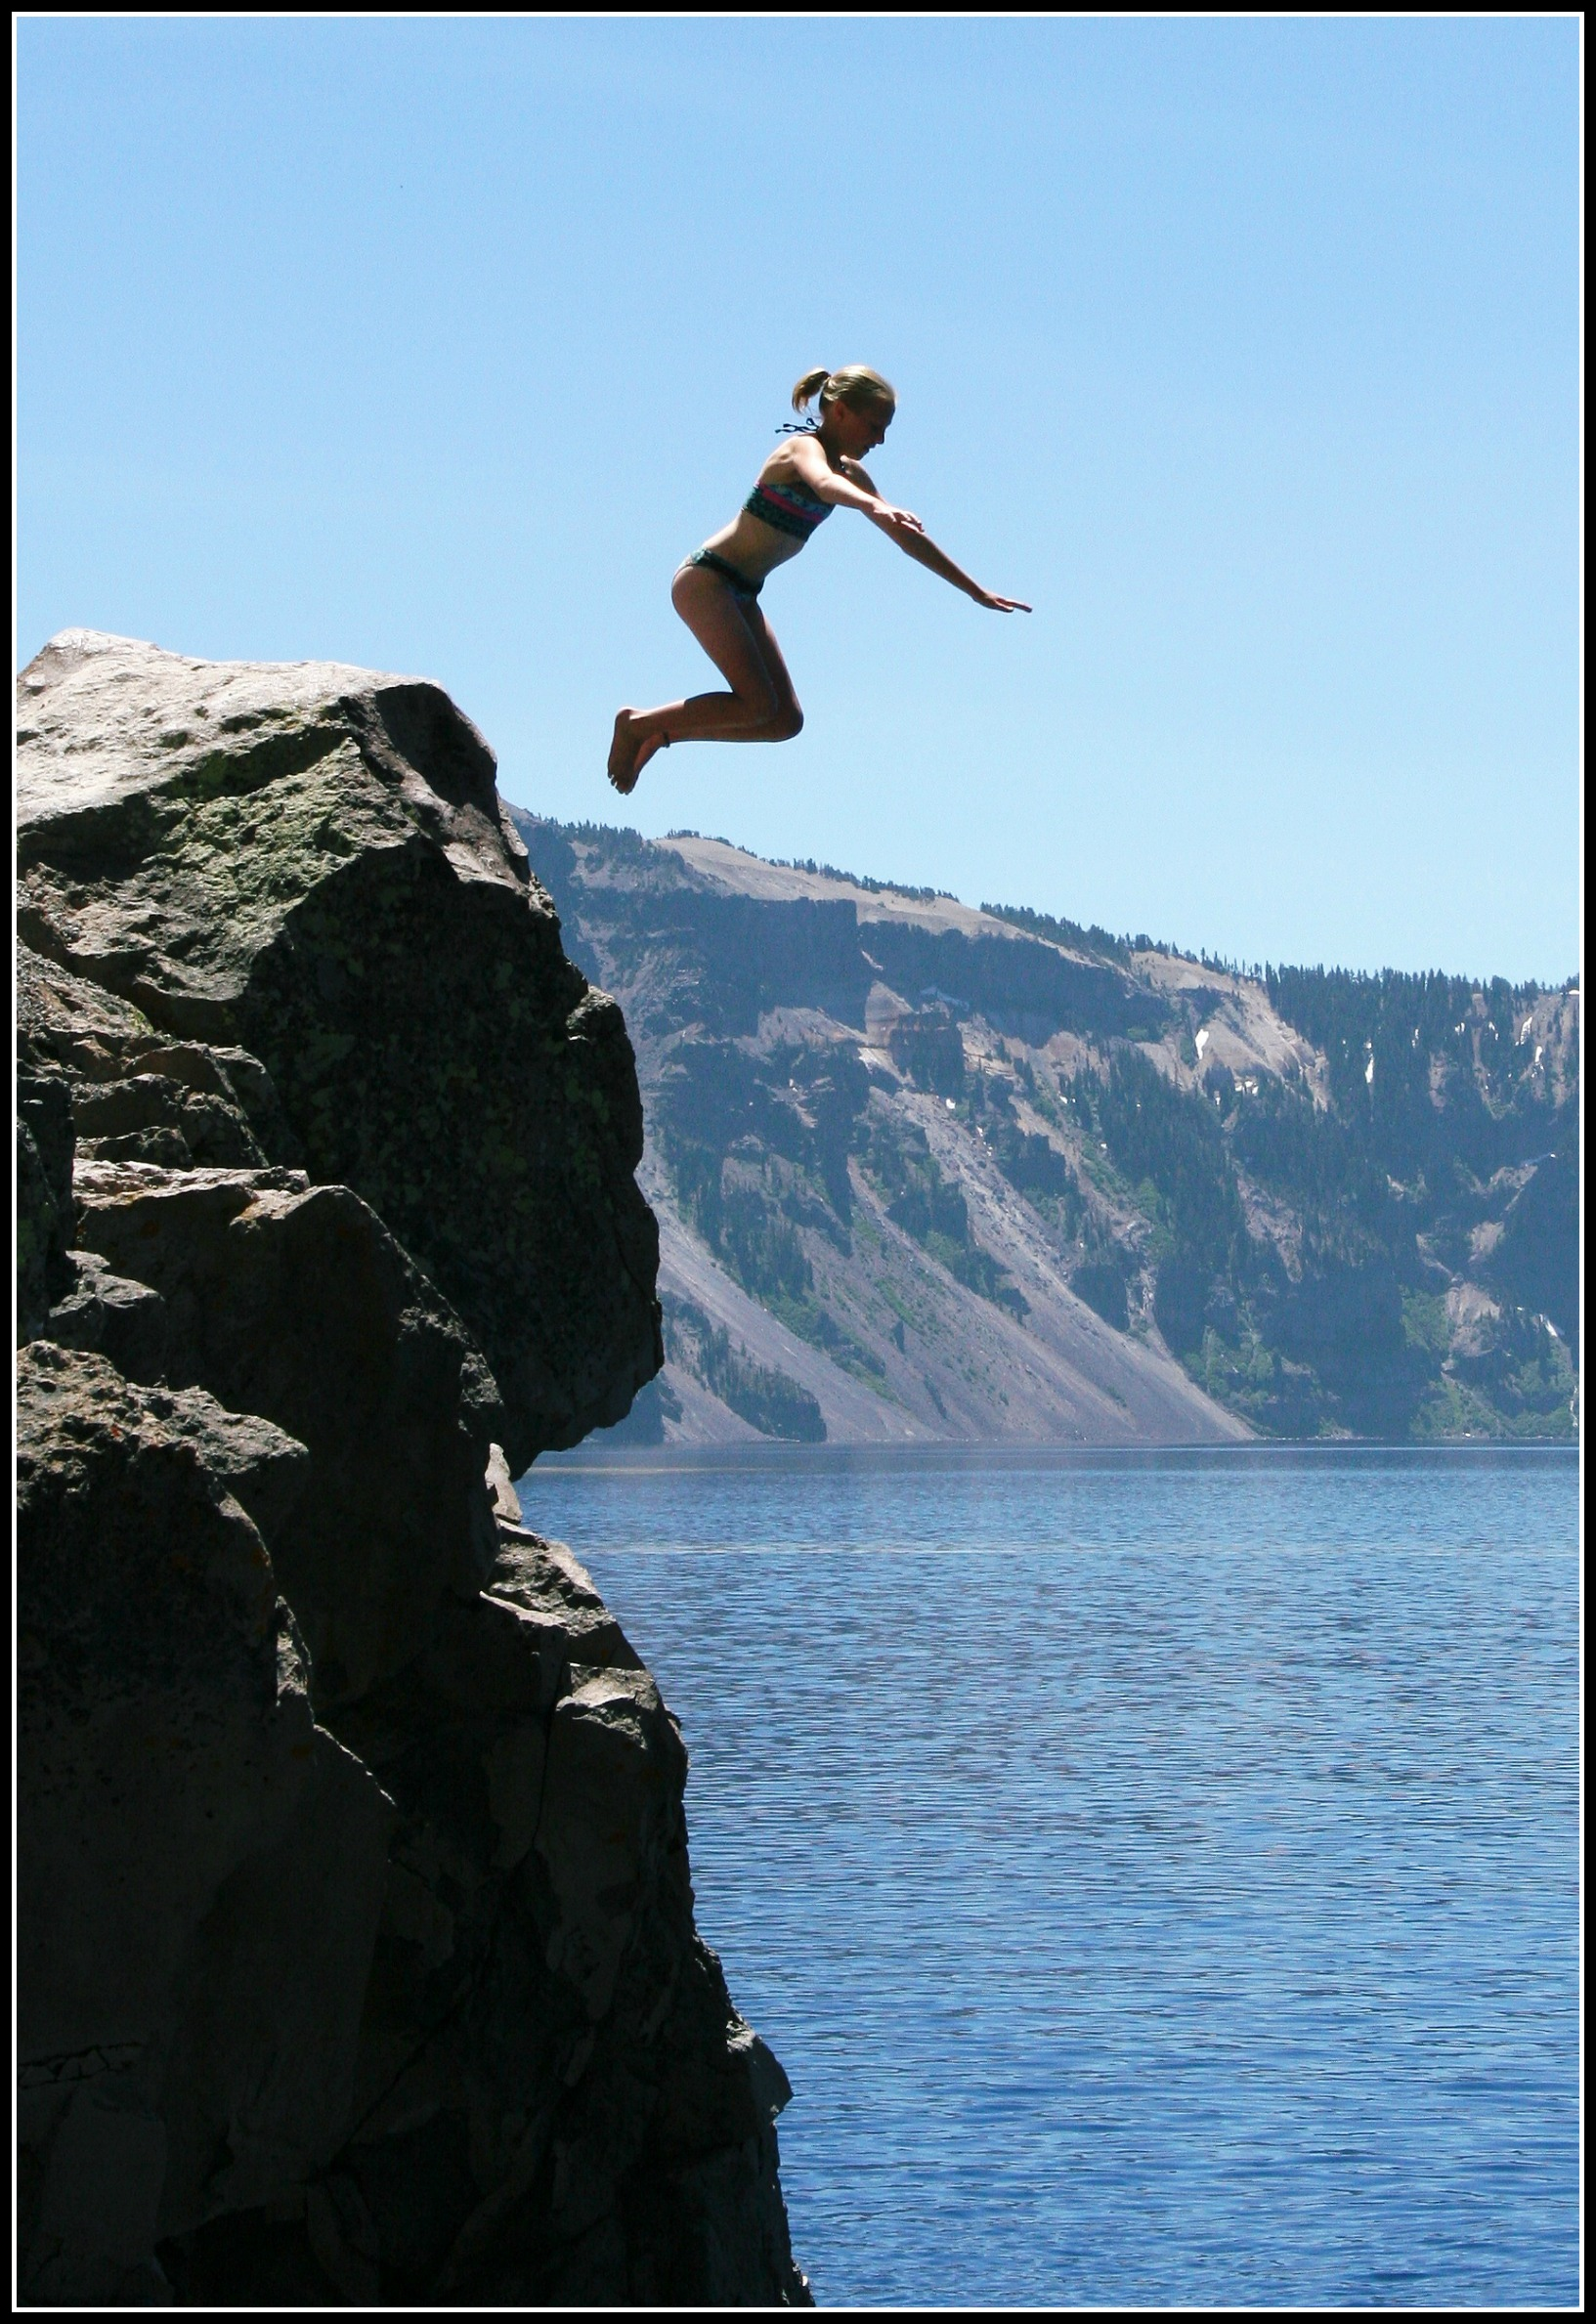 Man jumping off a cliff clipart.